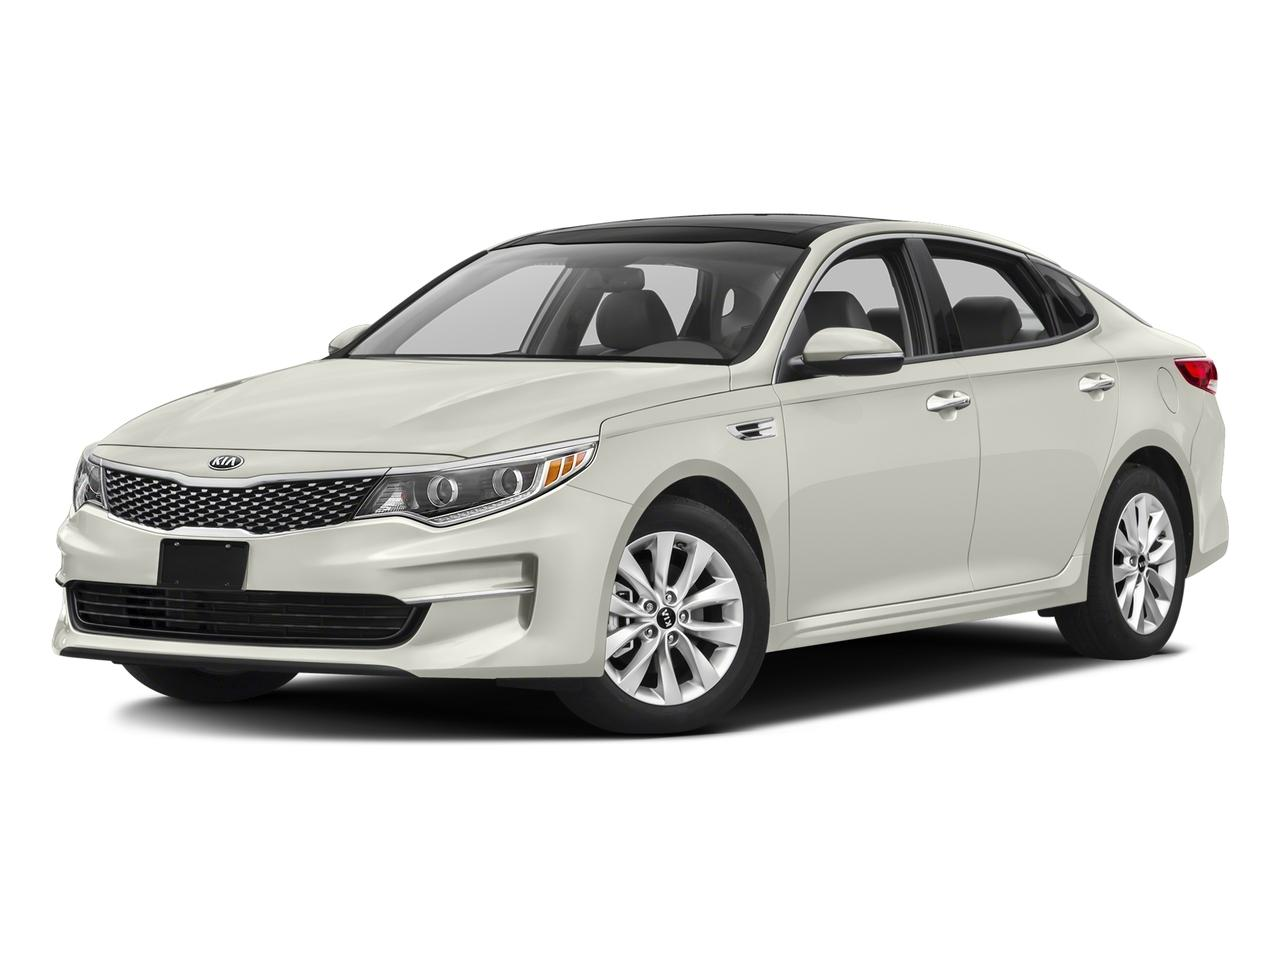 2016 Kia Optima Vehicle Photo in Streetsboro, OH 44241